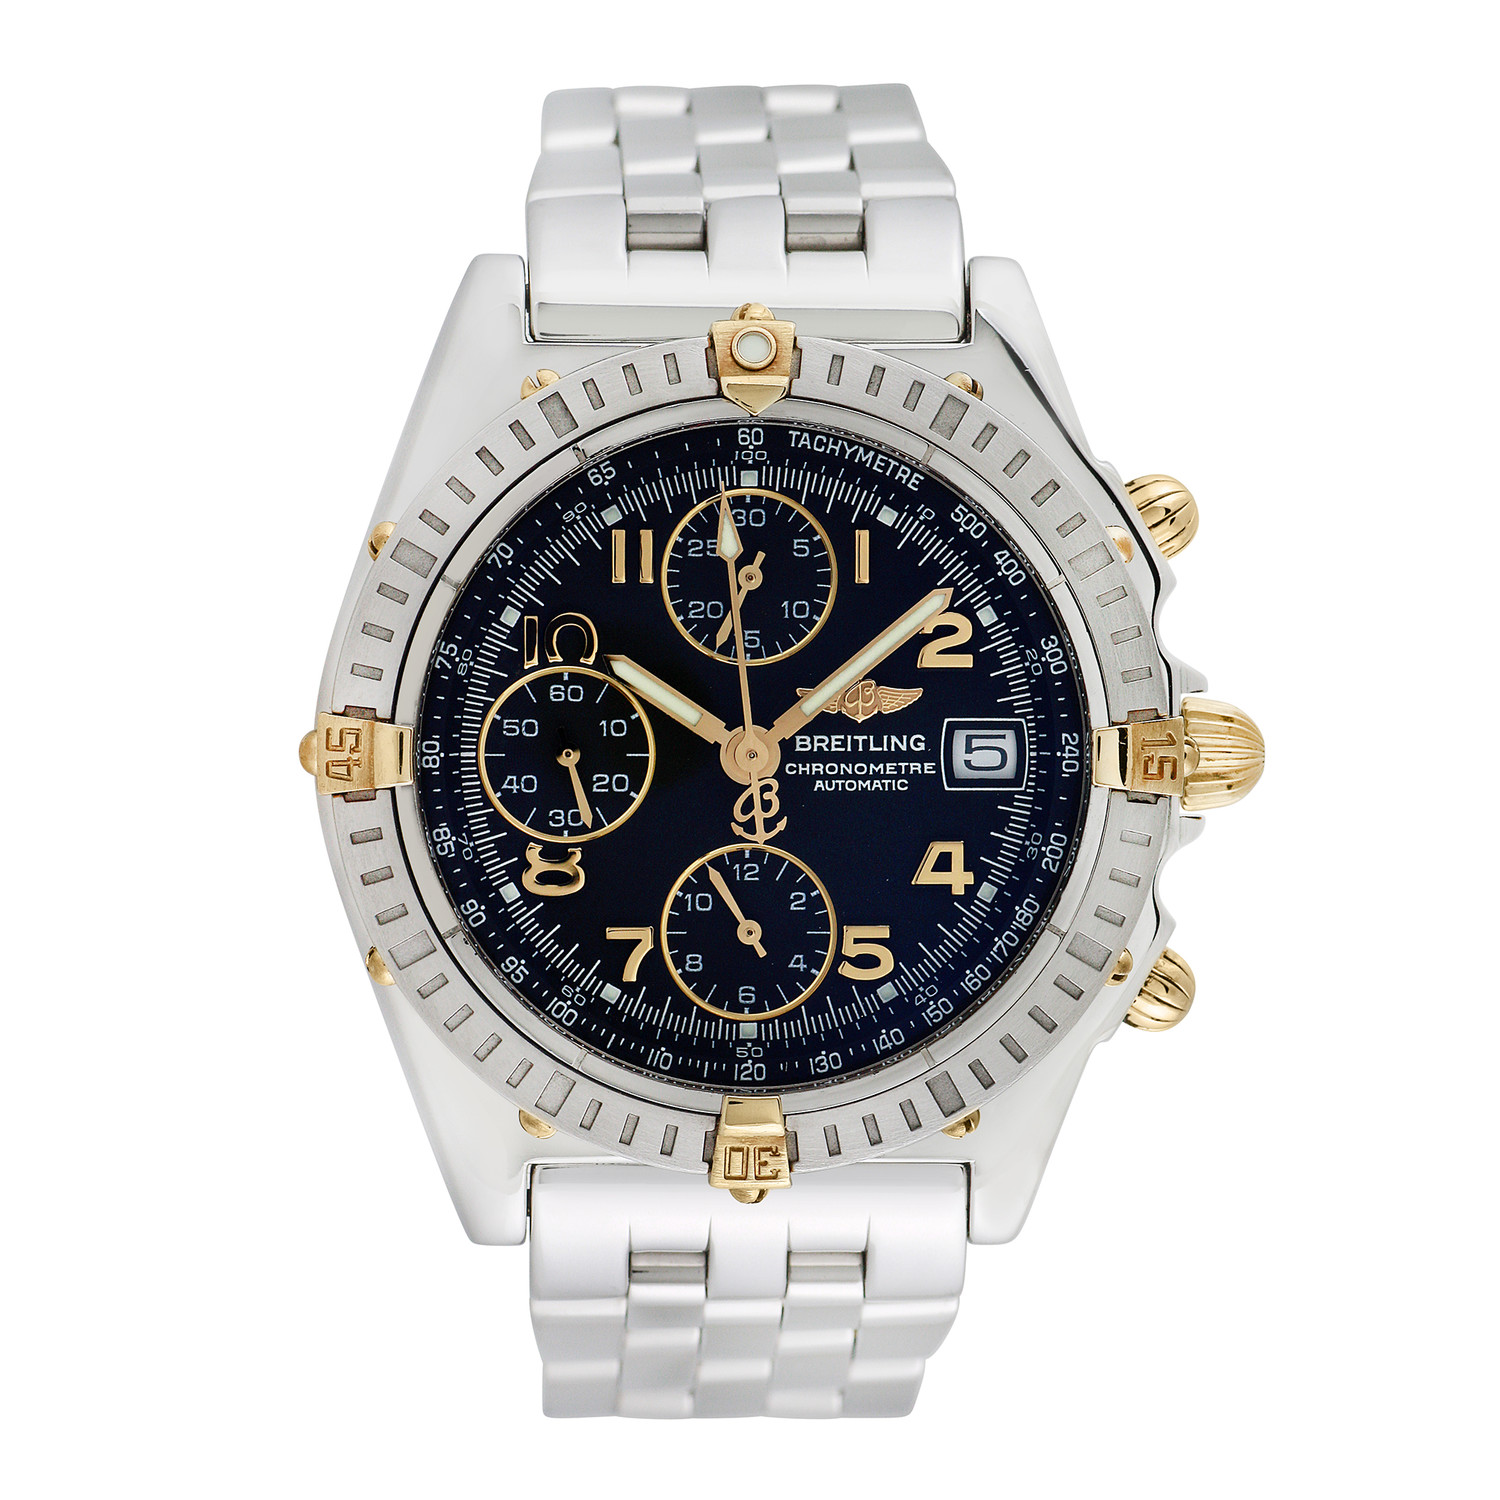 Breitling Chronomat Automatic B13050 1 Pre Owned Assorted